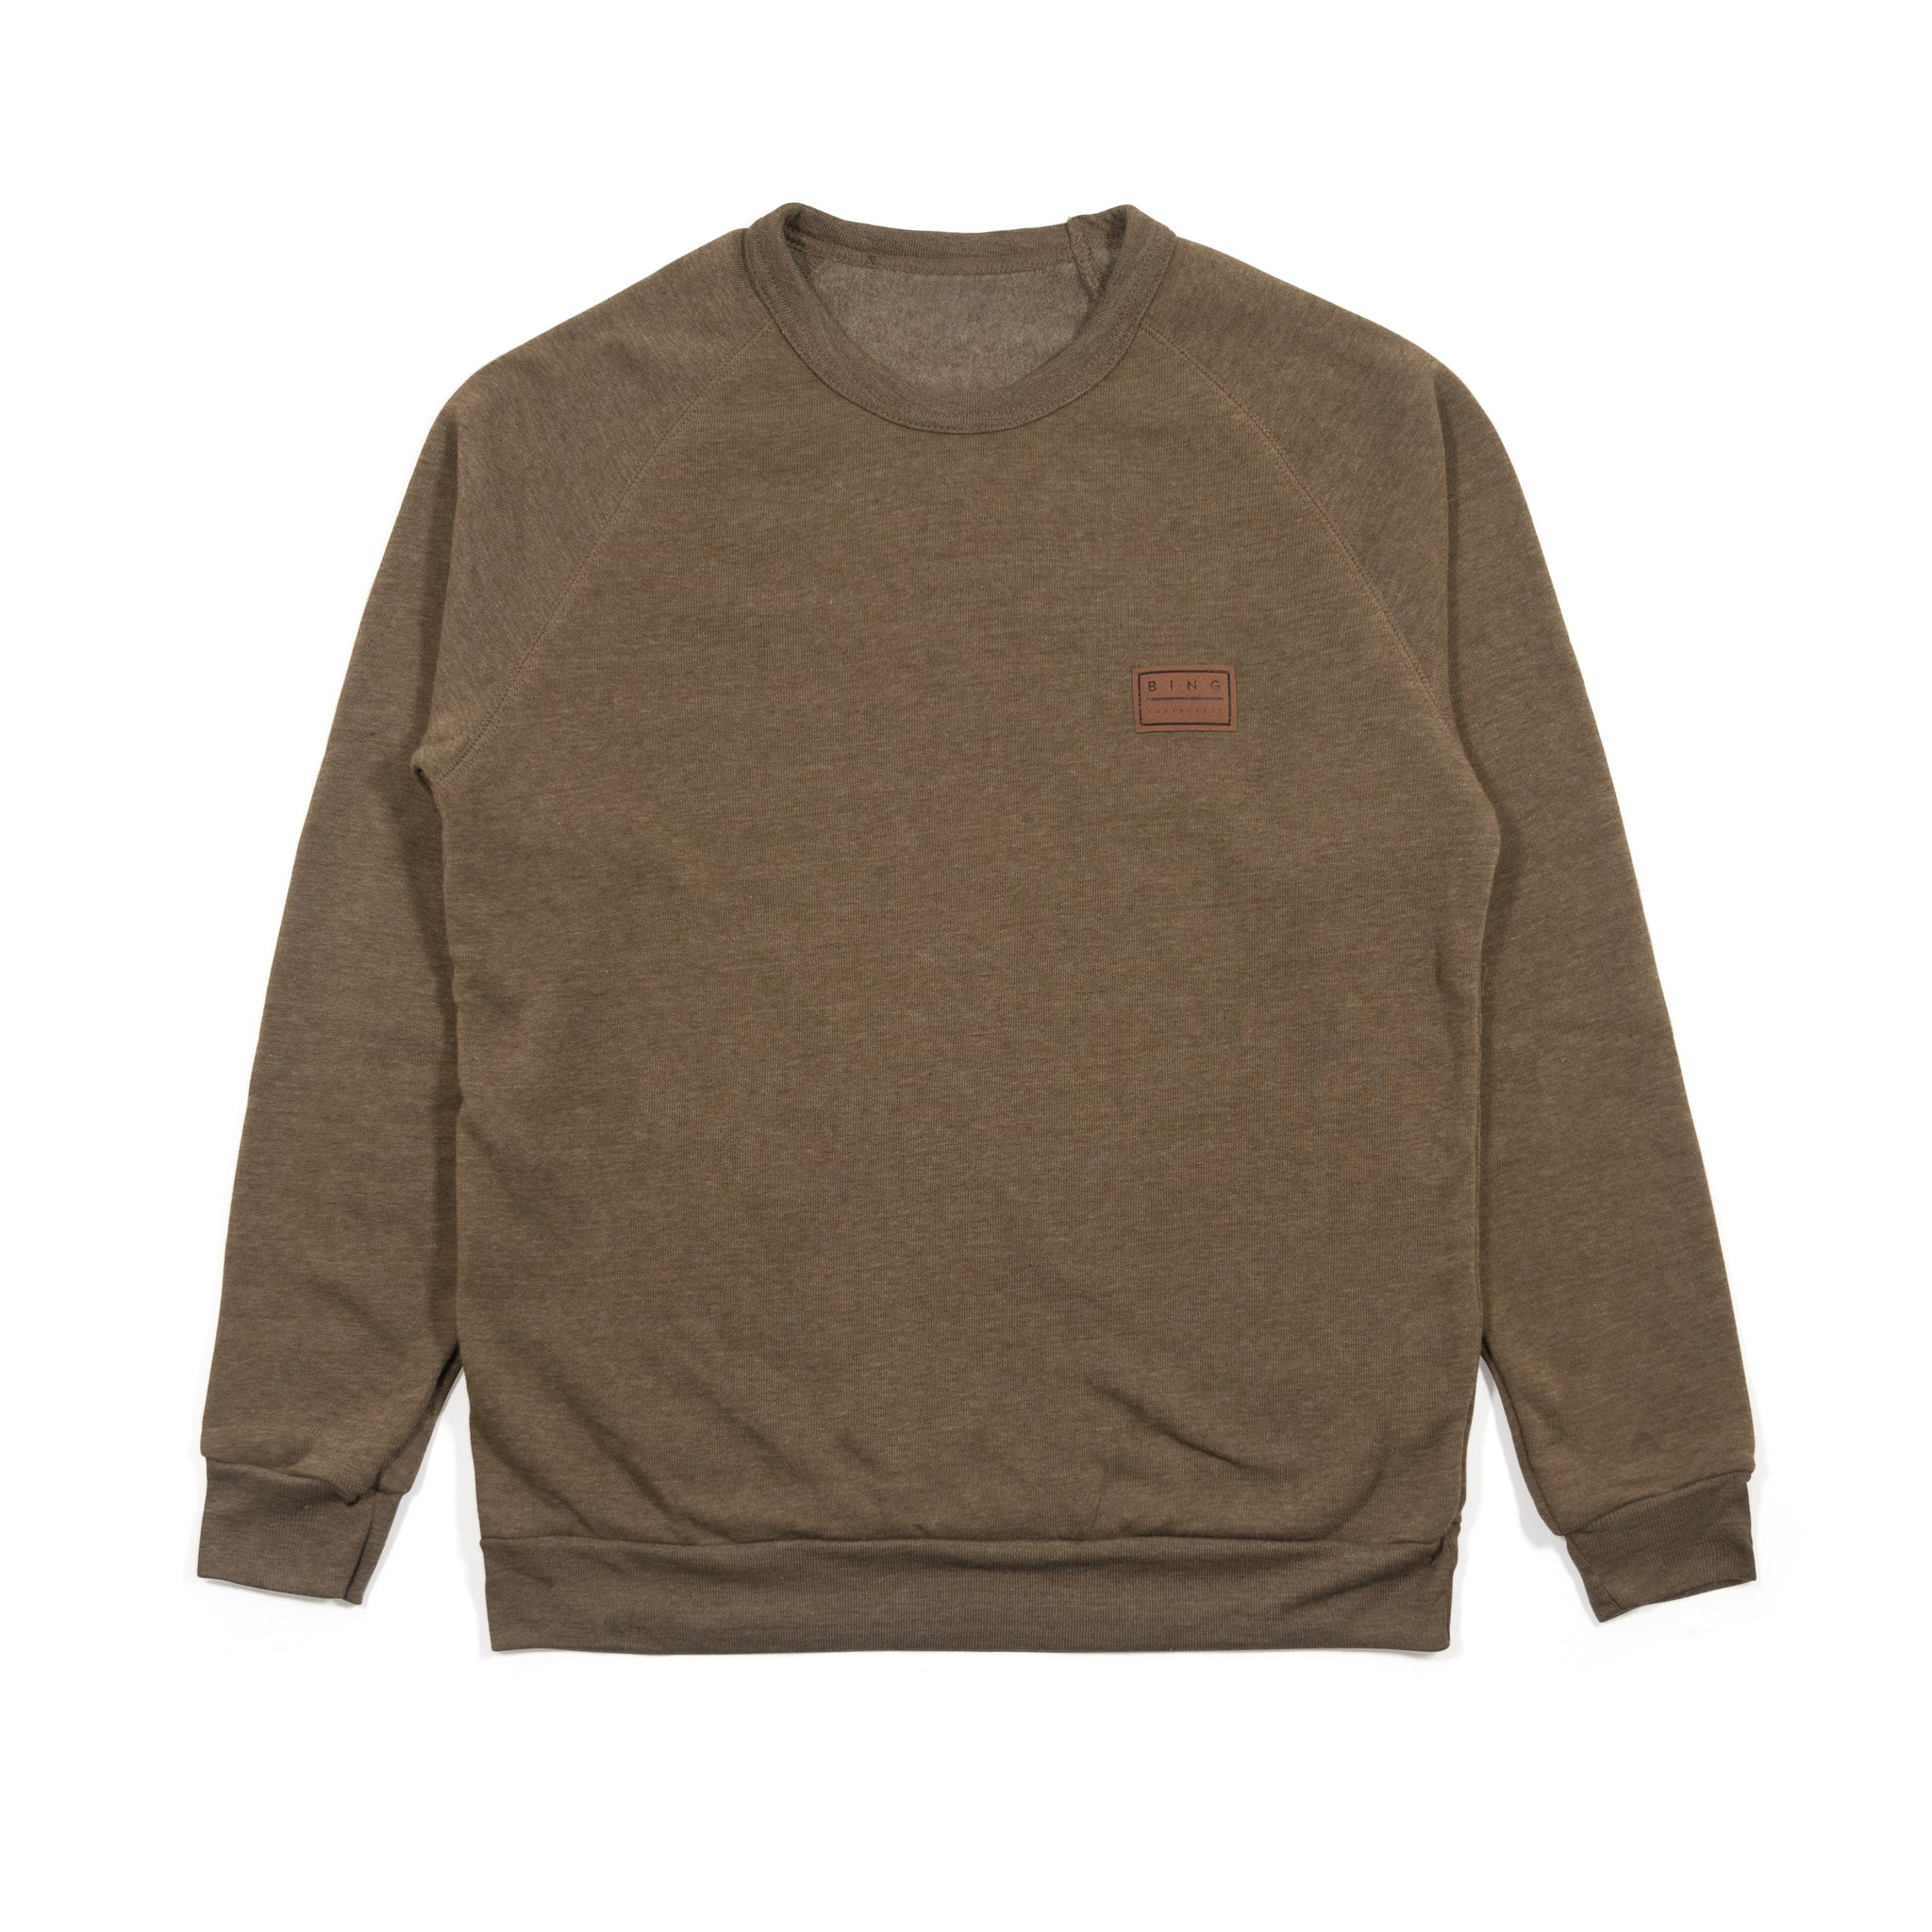 PATCH PREMIUM CREW SWEATSHIRT DARK OLIVE